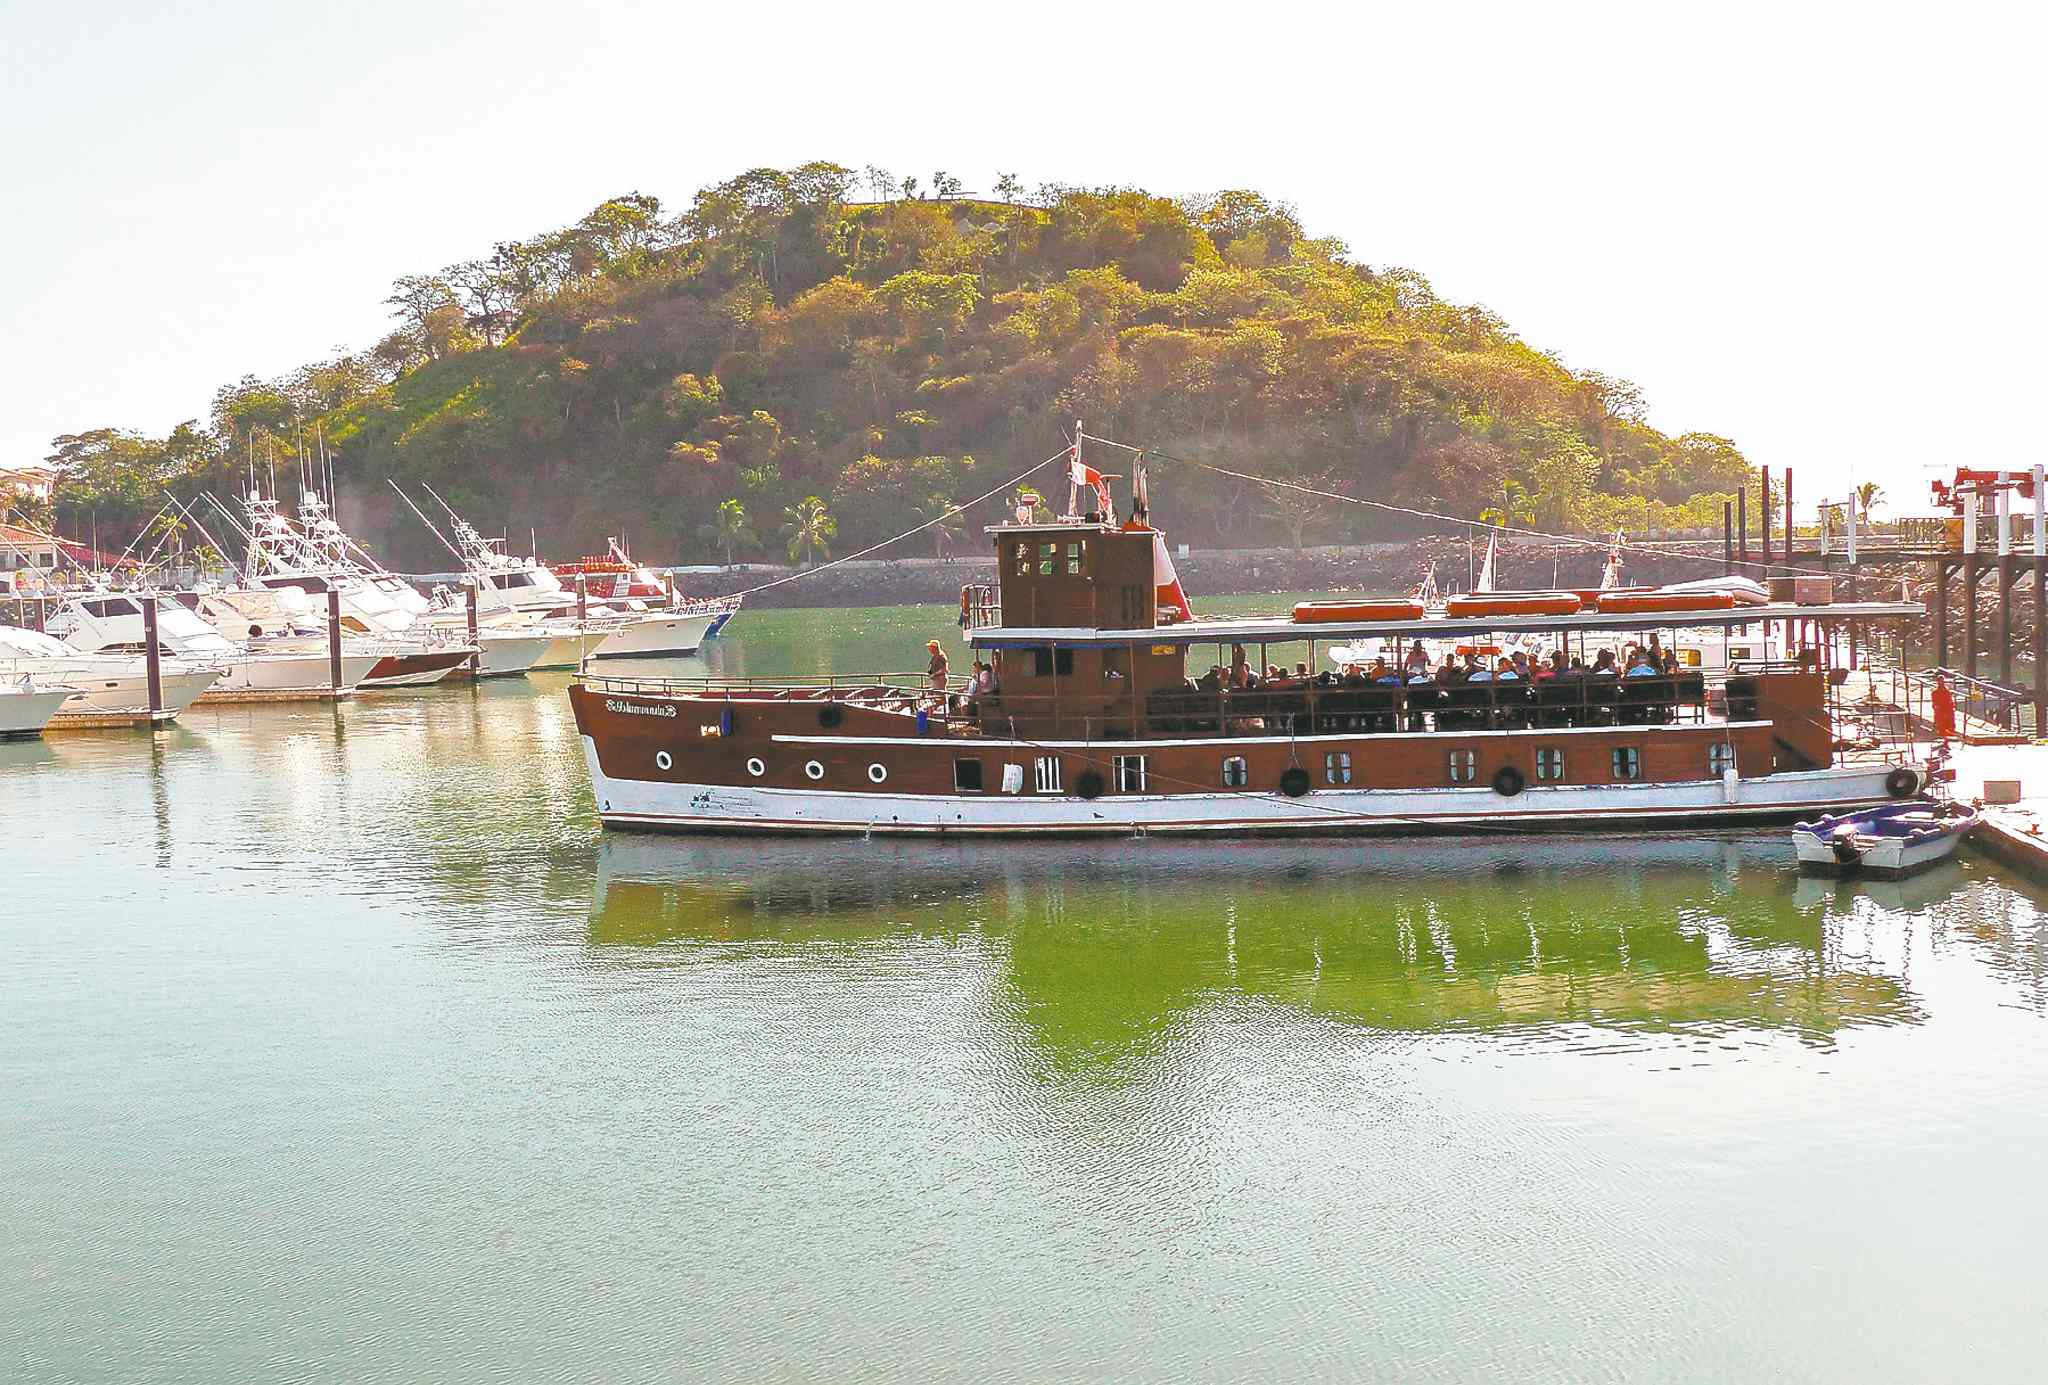 The Isla Morada, which belonged to the famous U.S. Mafioso Al Capone, prepares to weigh anchor in Panama City.